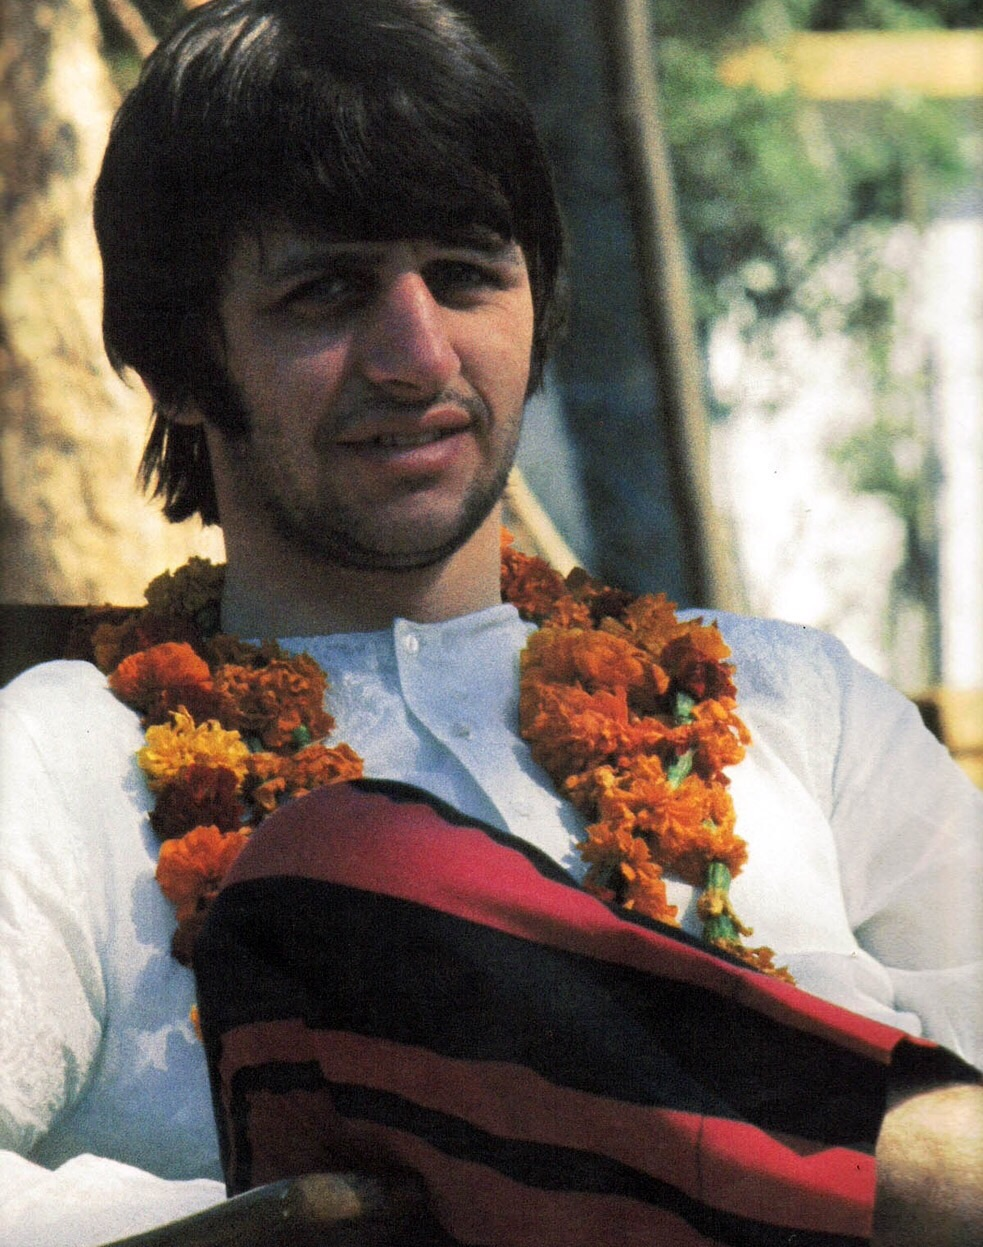 Ringo Starr brought a suitcase full of tins of beans to India, 1968.